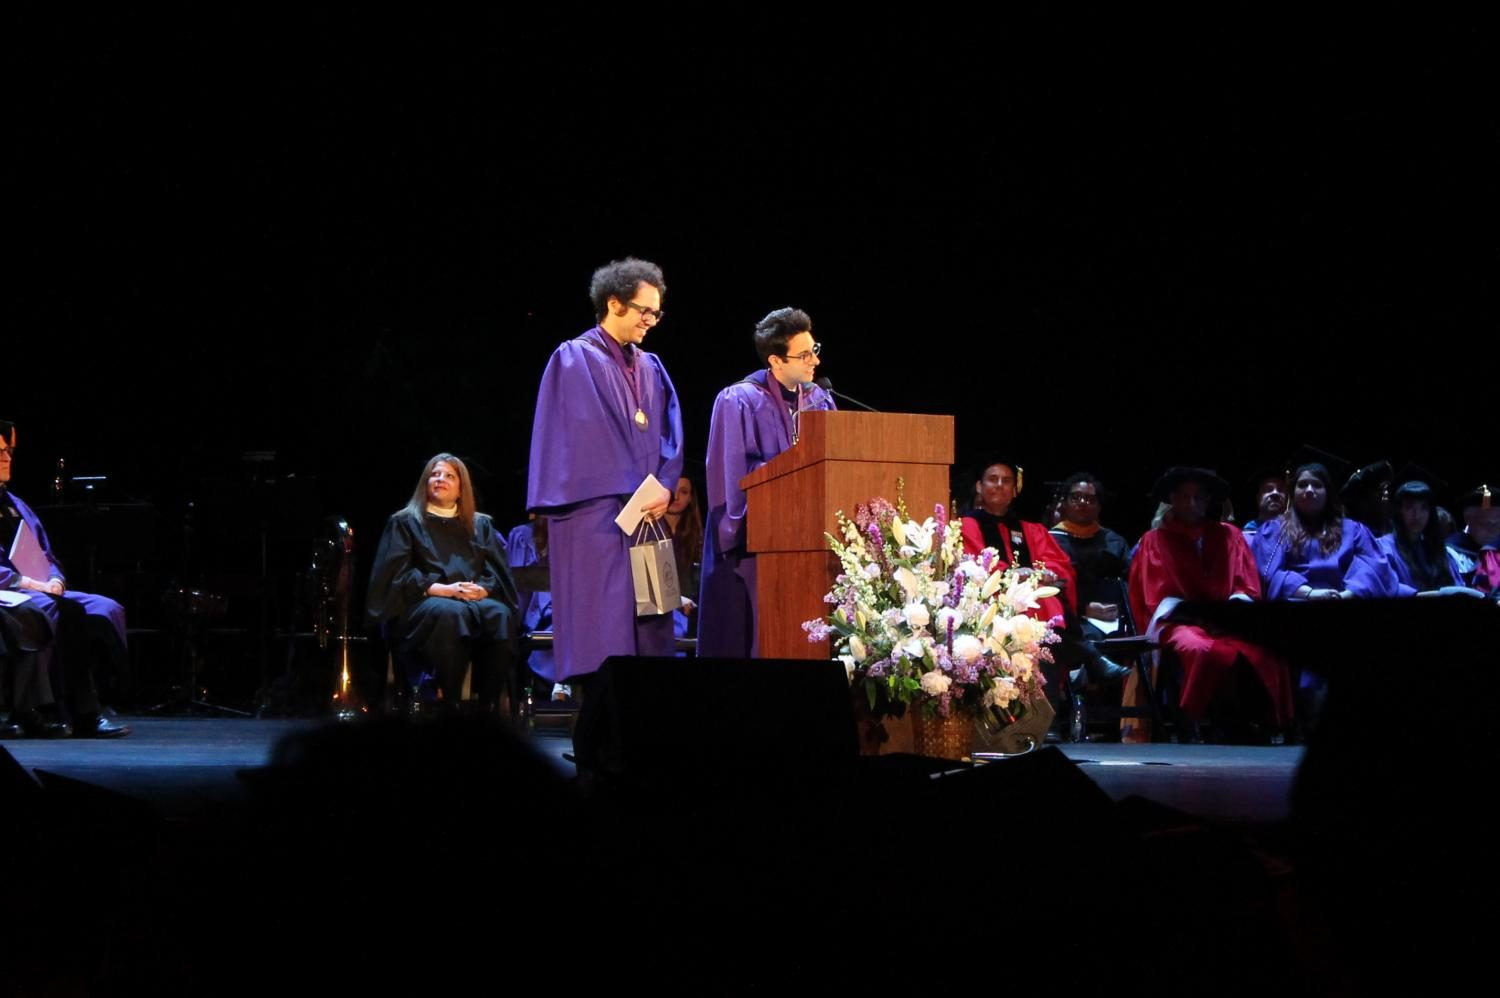 Steinhardt+alumni+Ian+Axel+and+Chad+King%2C+who+make+up+the+platinum-selling+music+group+A+Great+Big+World%2C+accepted+the+2017+Dorothy+Height+Distinguished+Alumni+Award+at+this+year%27s+Steinhardt+Undergraduate+Commencement+ceremony.+The+duo+graduated+in+2007+from+the+school%27s+Music+Business+program.